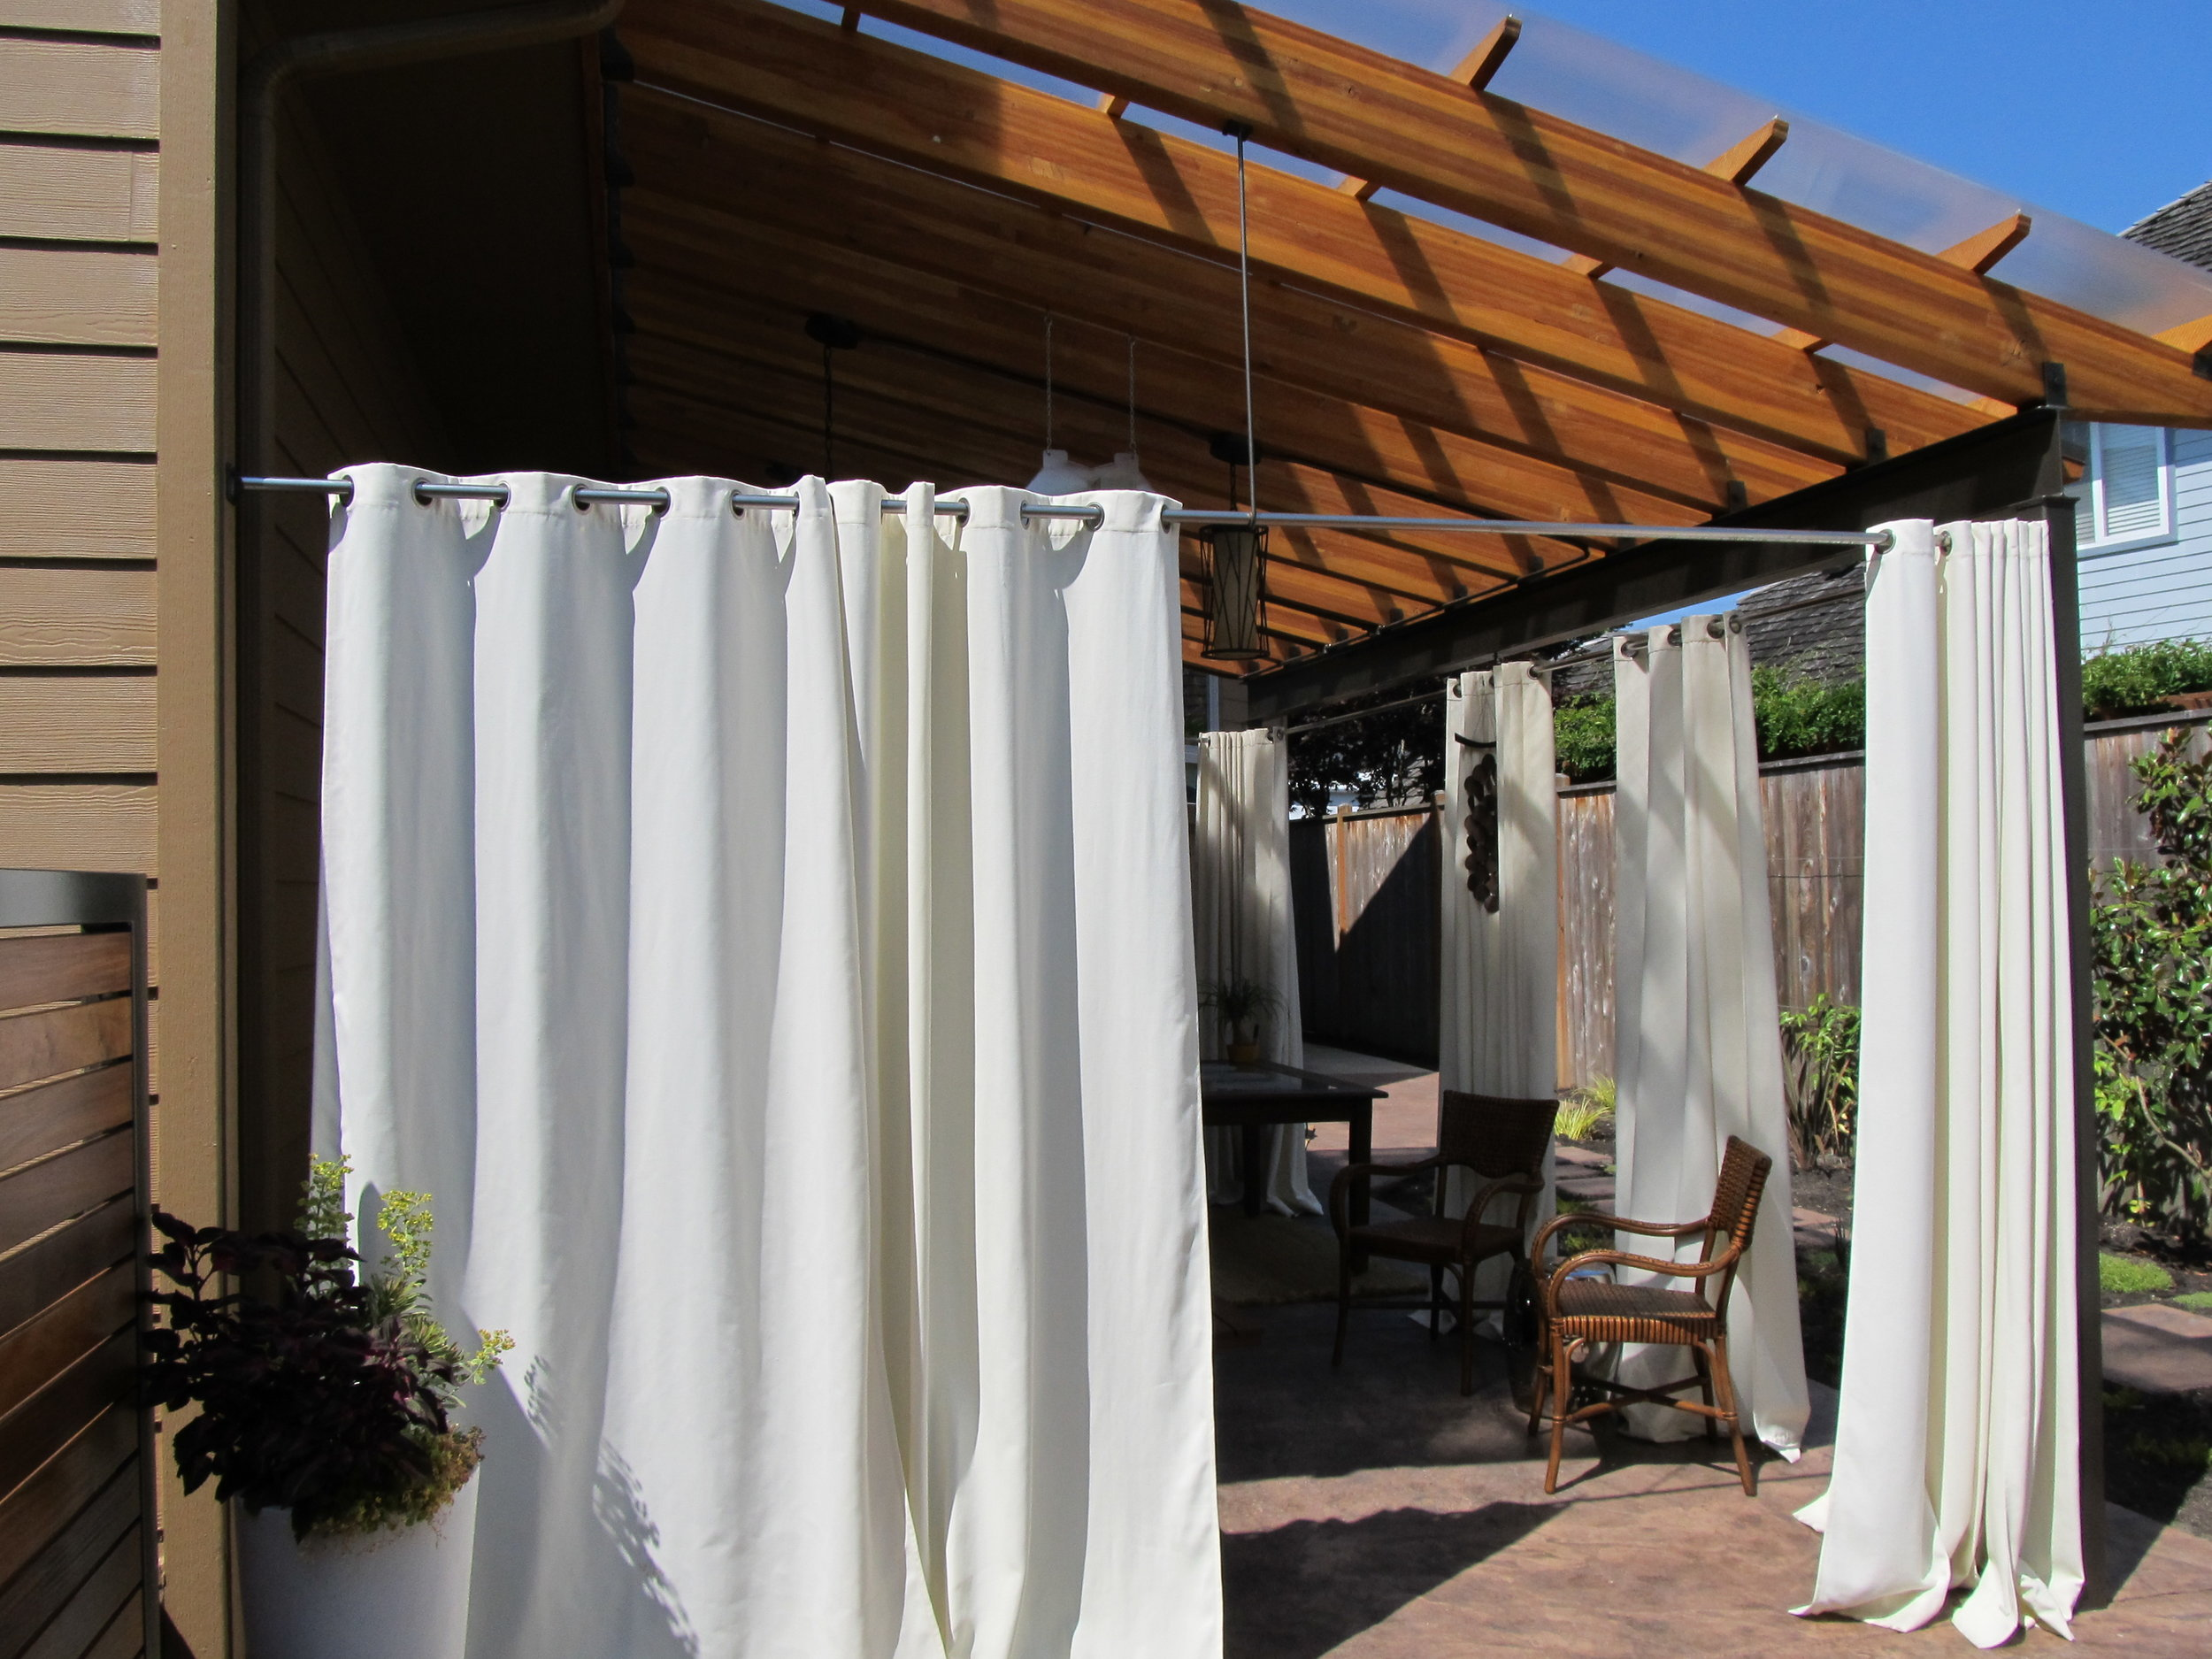 Outdoor Steel Valance with Curtains